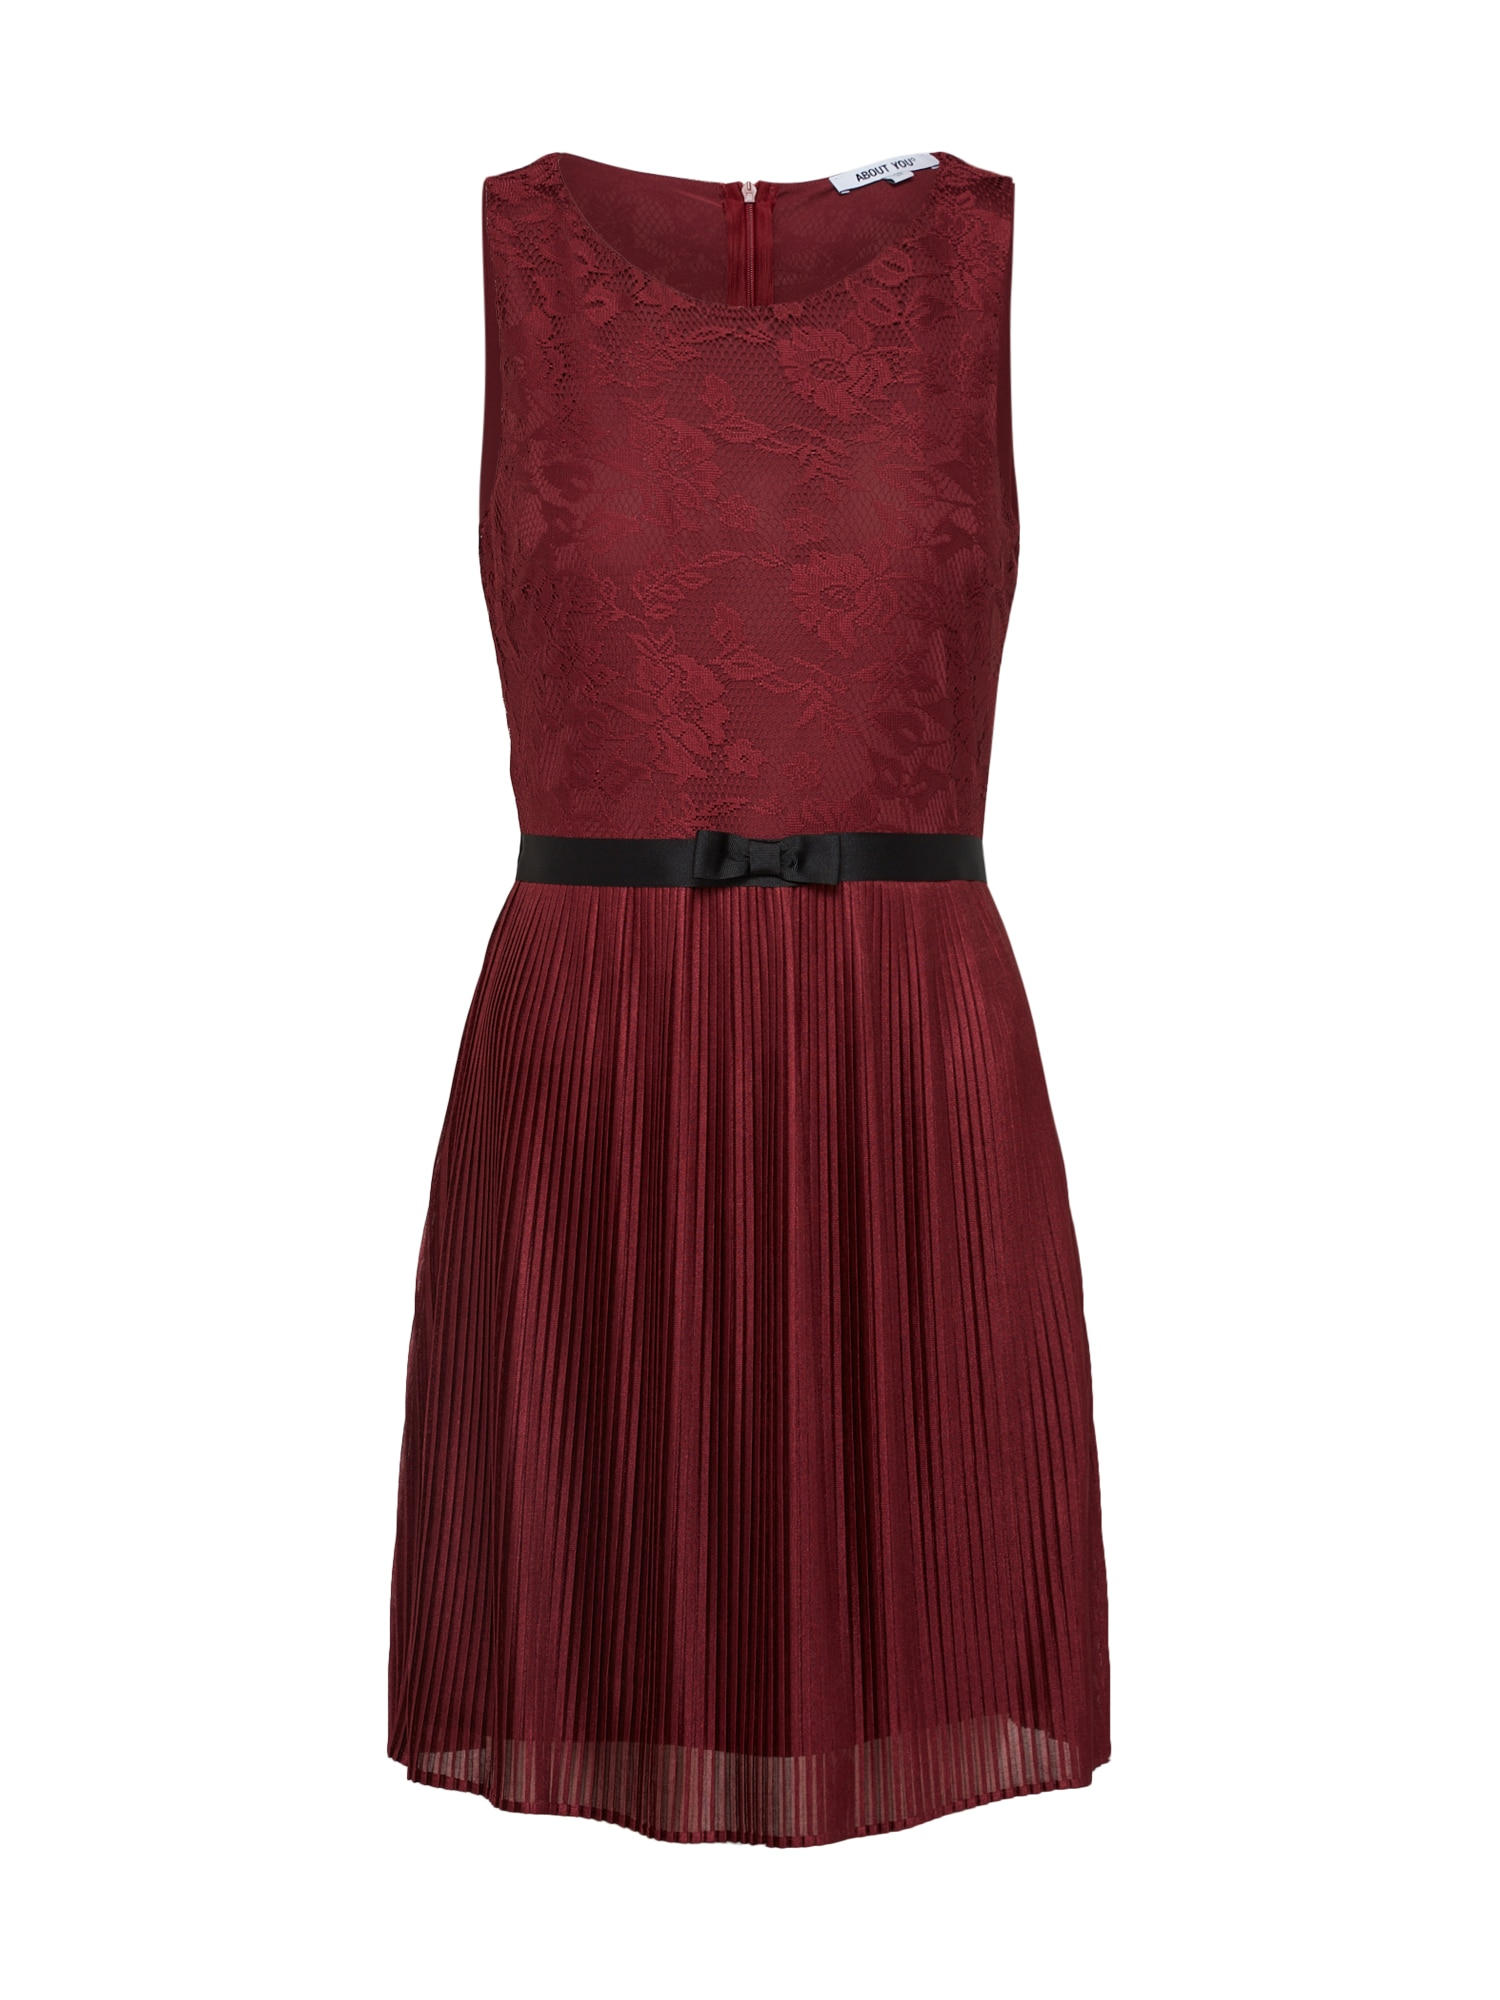 ABOUT YOU Cocktailjurk 'Viviana Dress' bordeaux